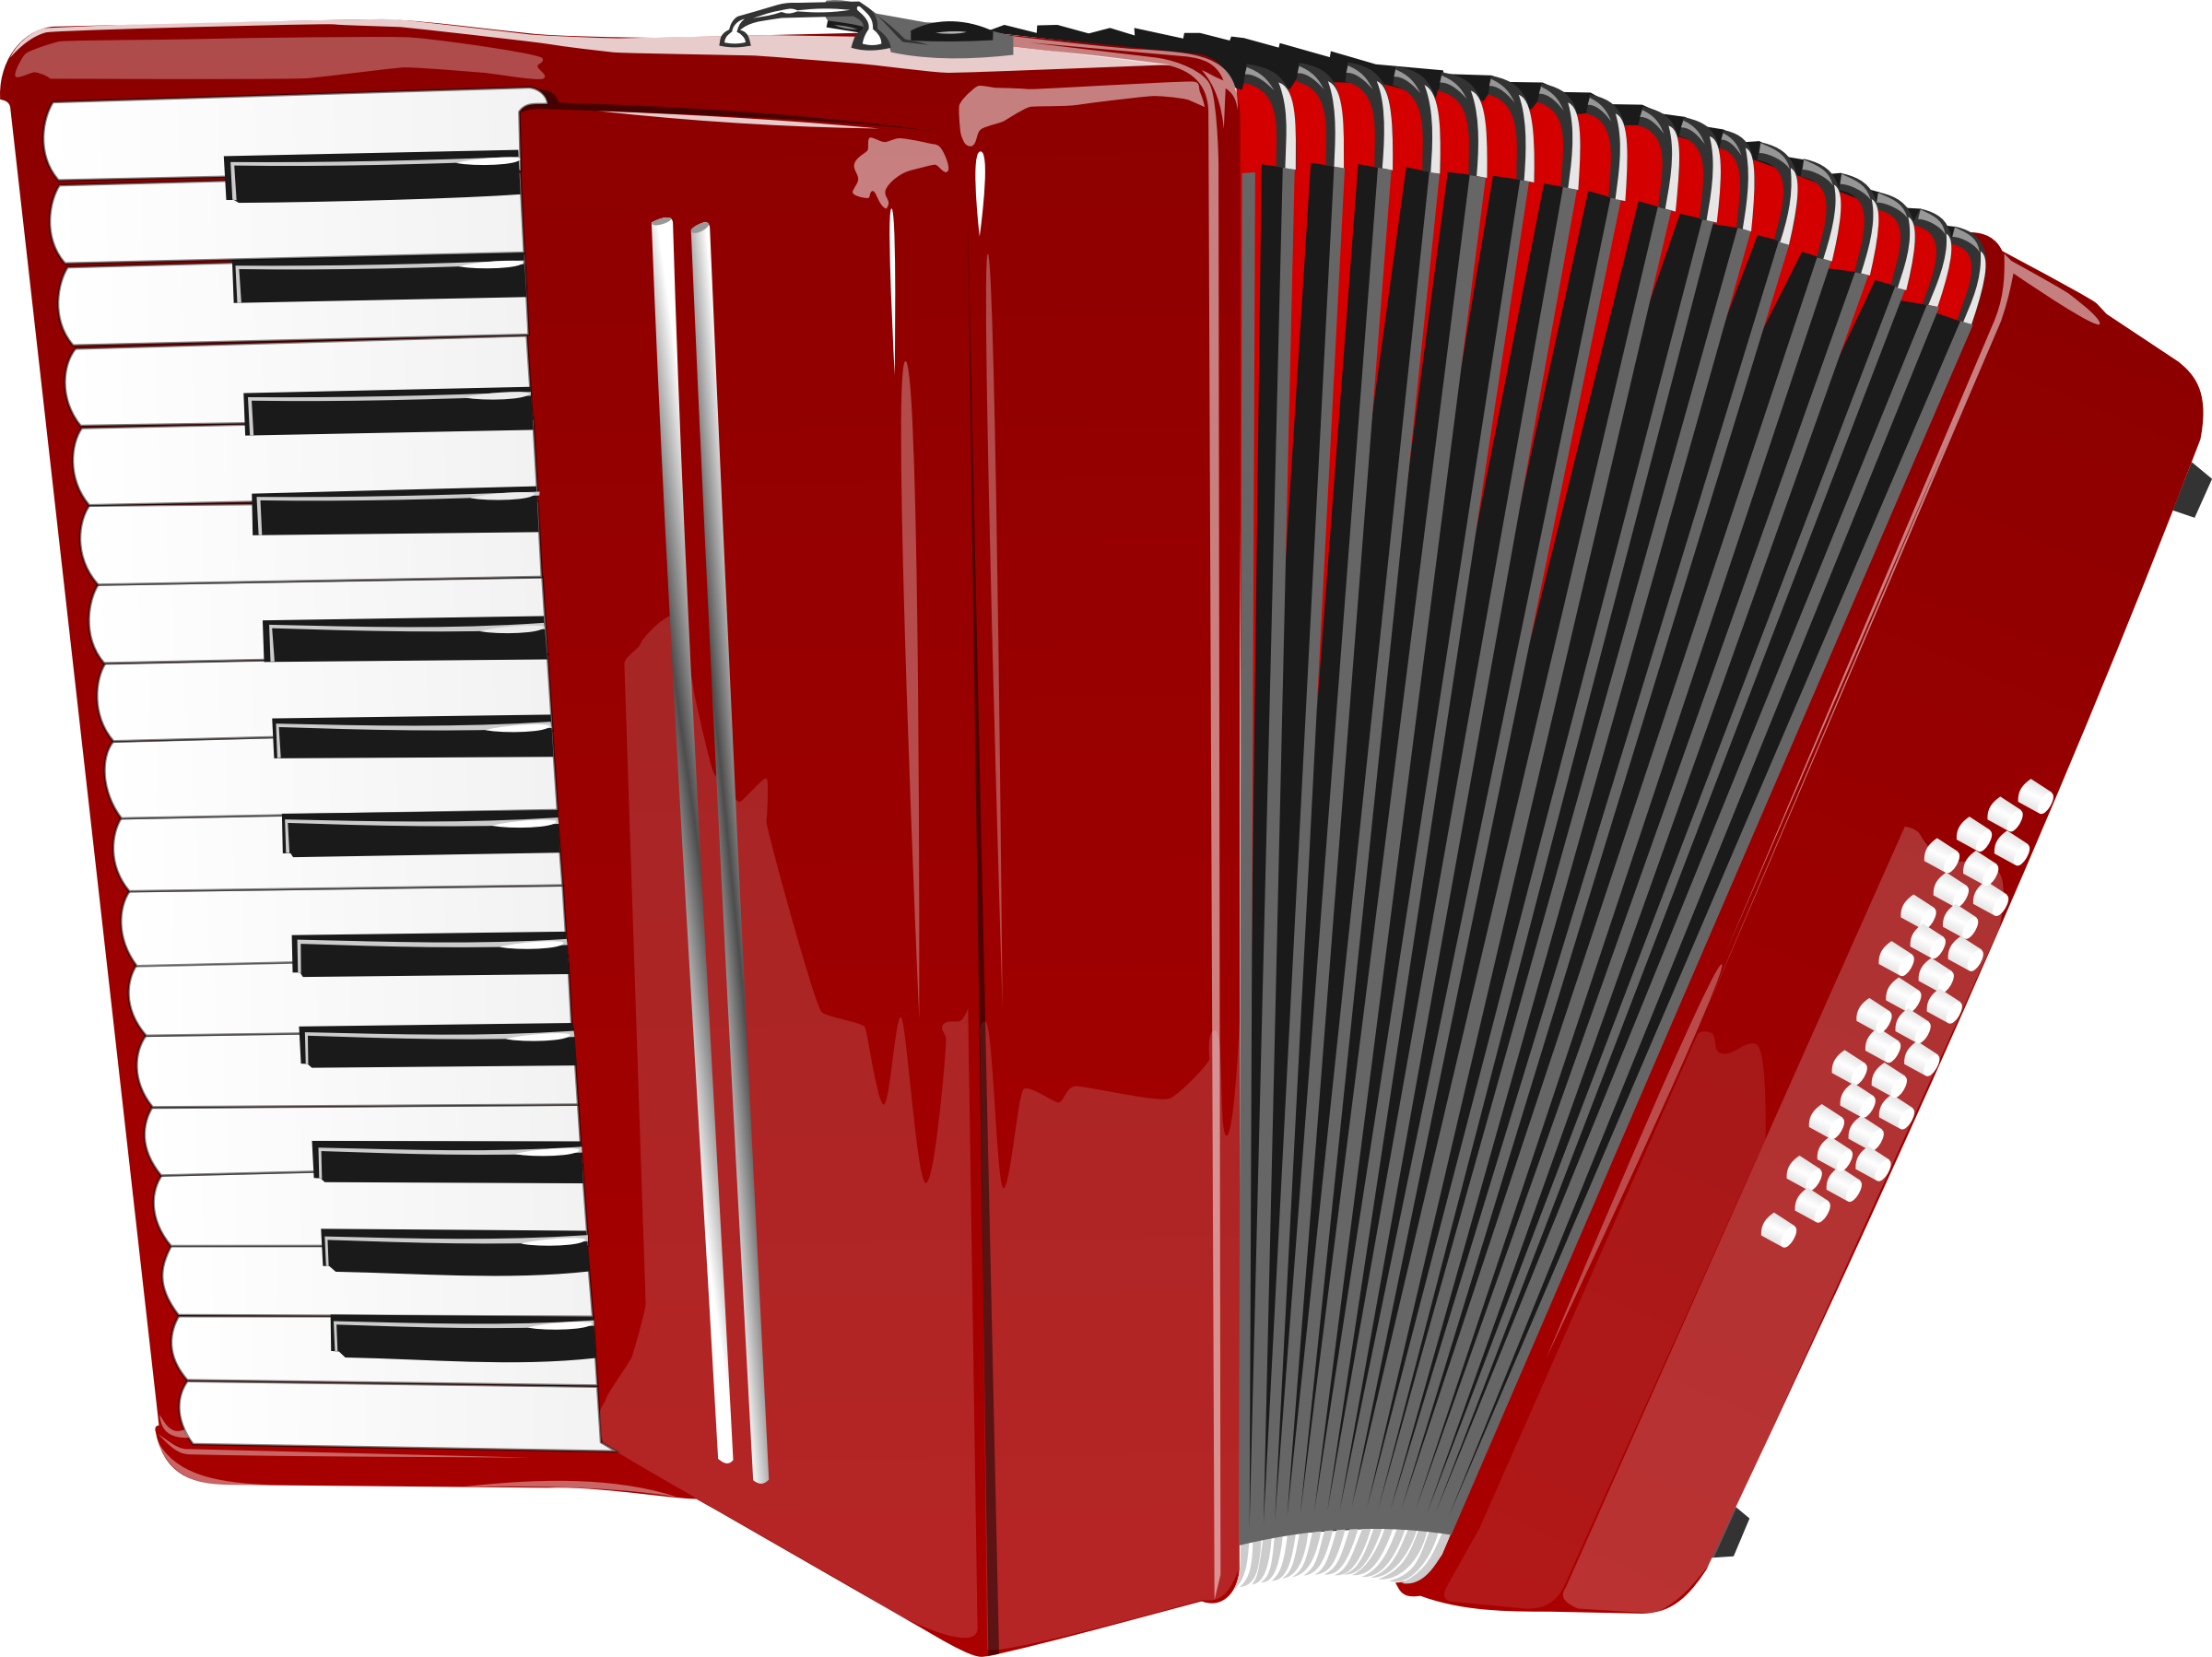 Accordion by gustavorezende